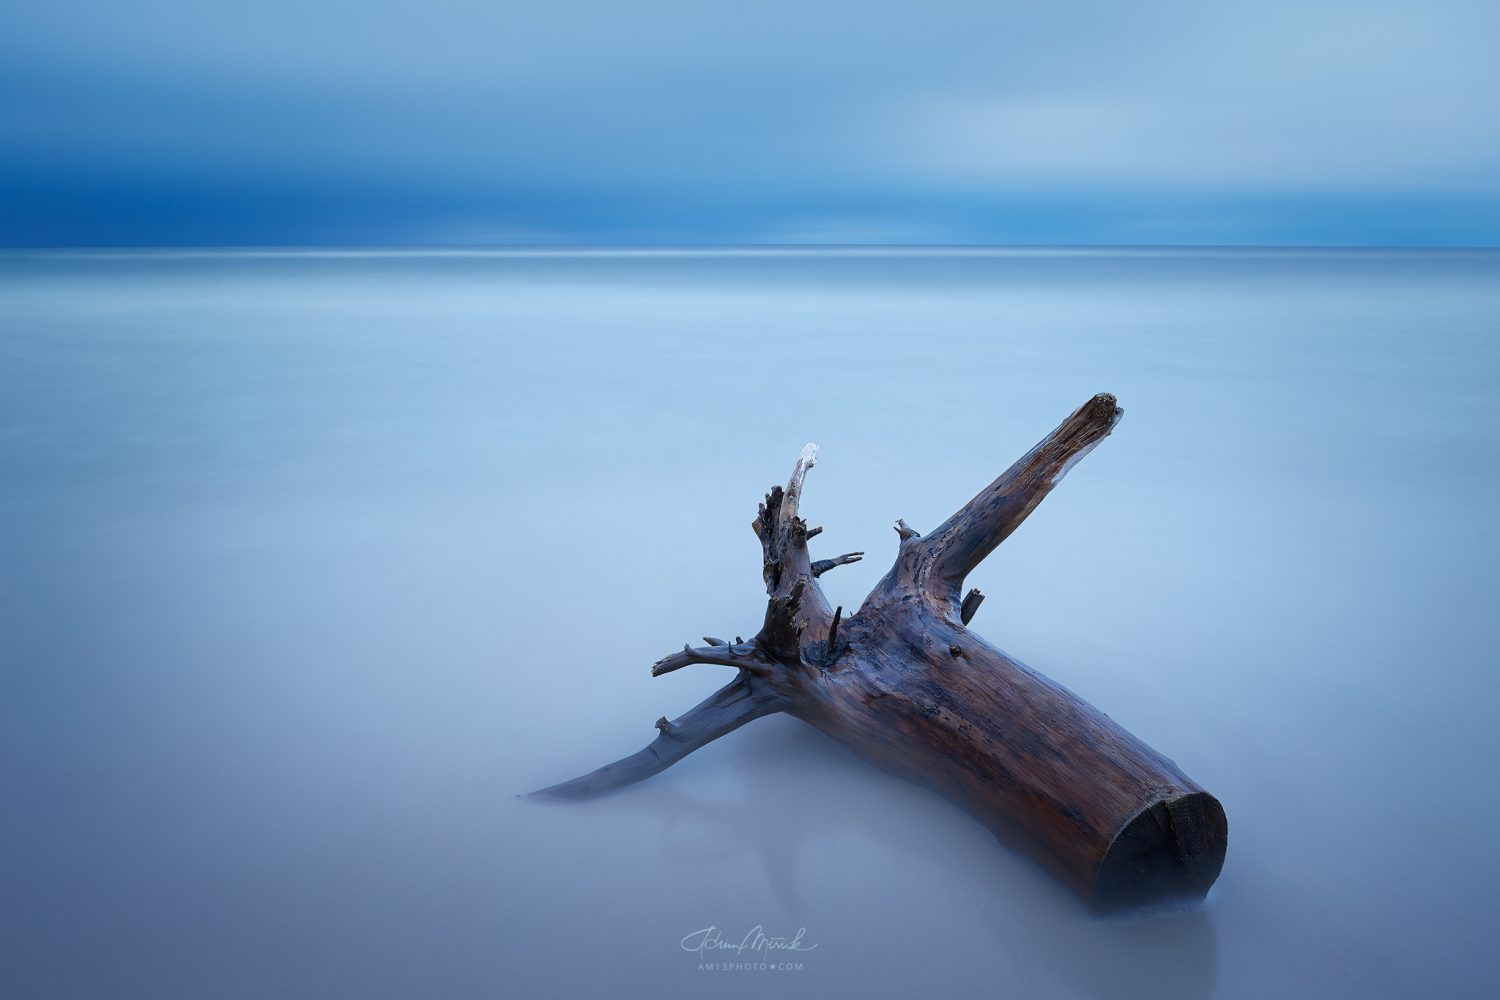 Baltic sea and stump, long exposure